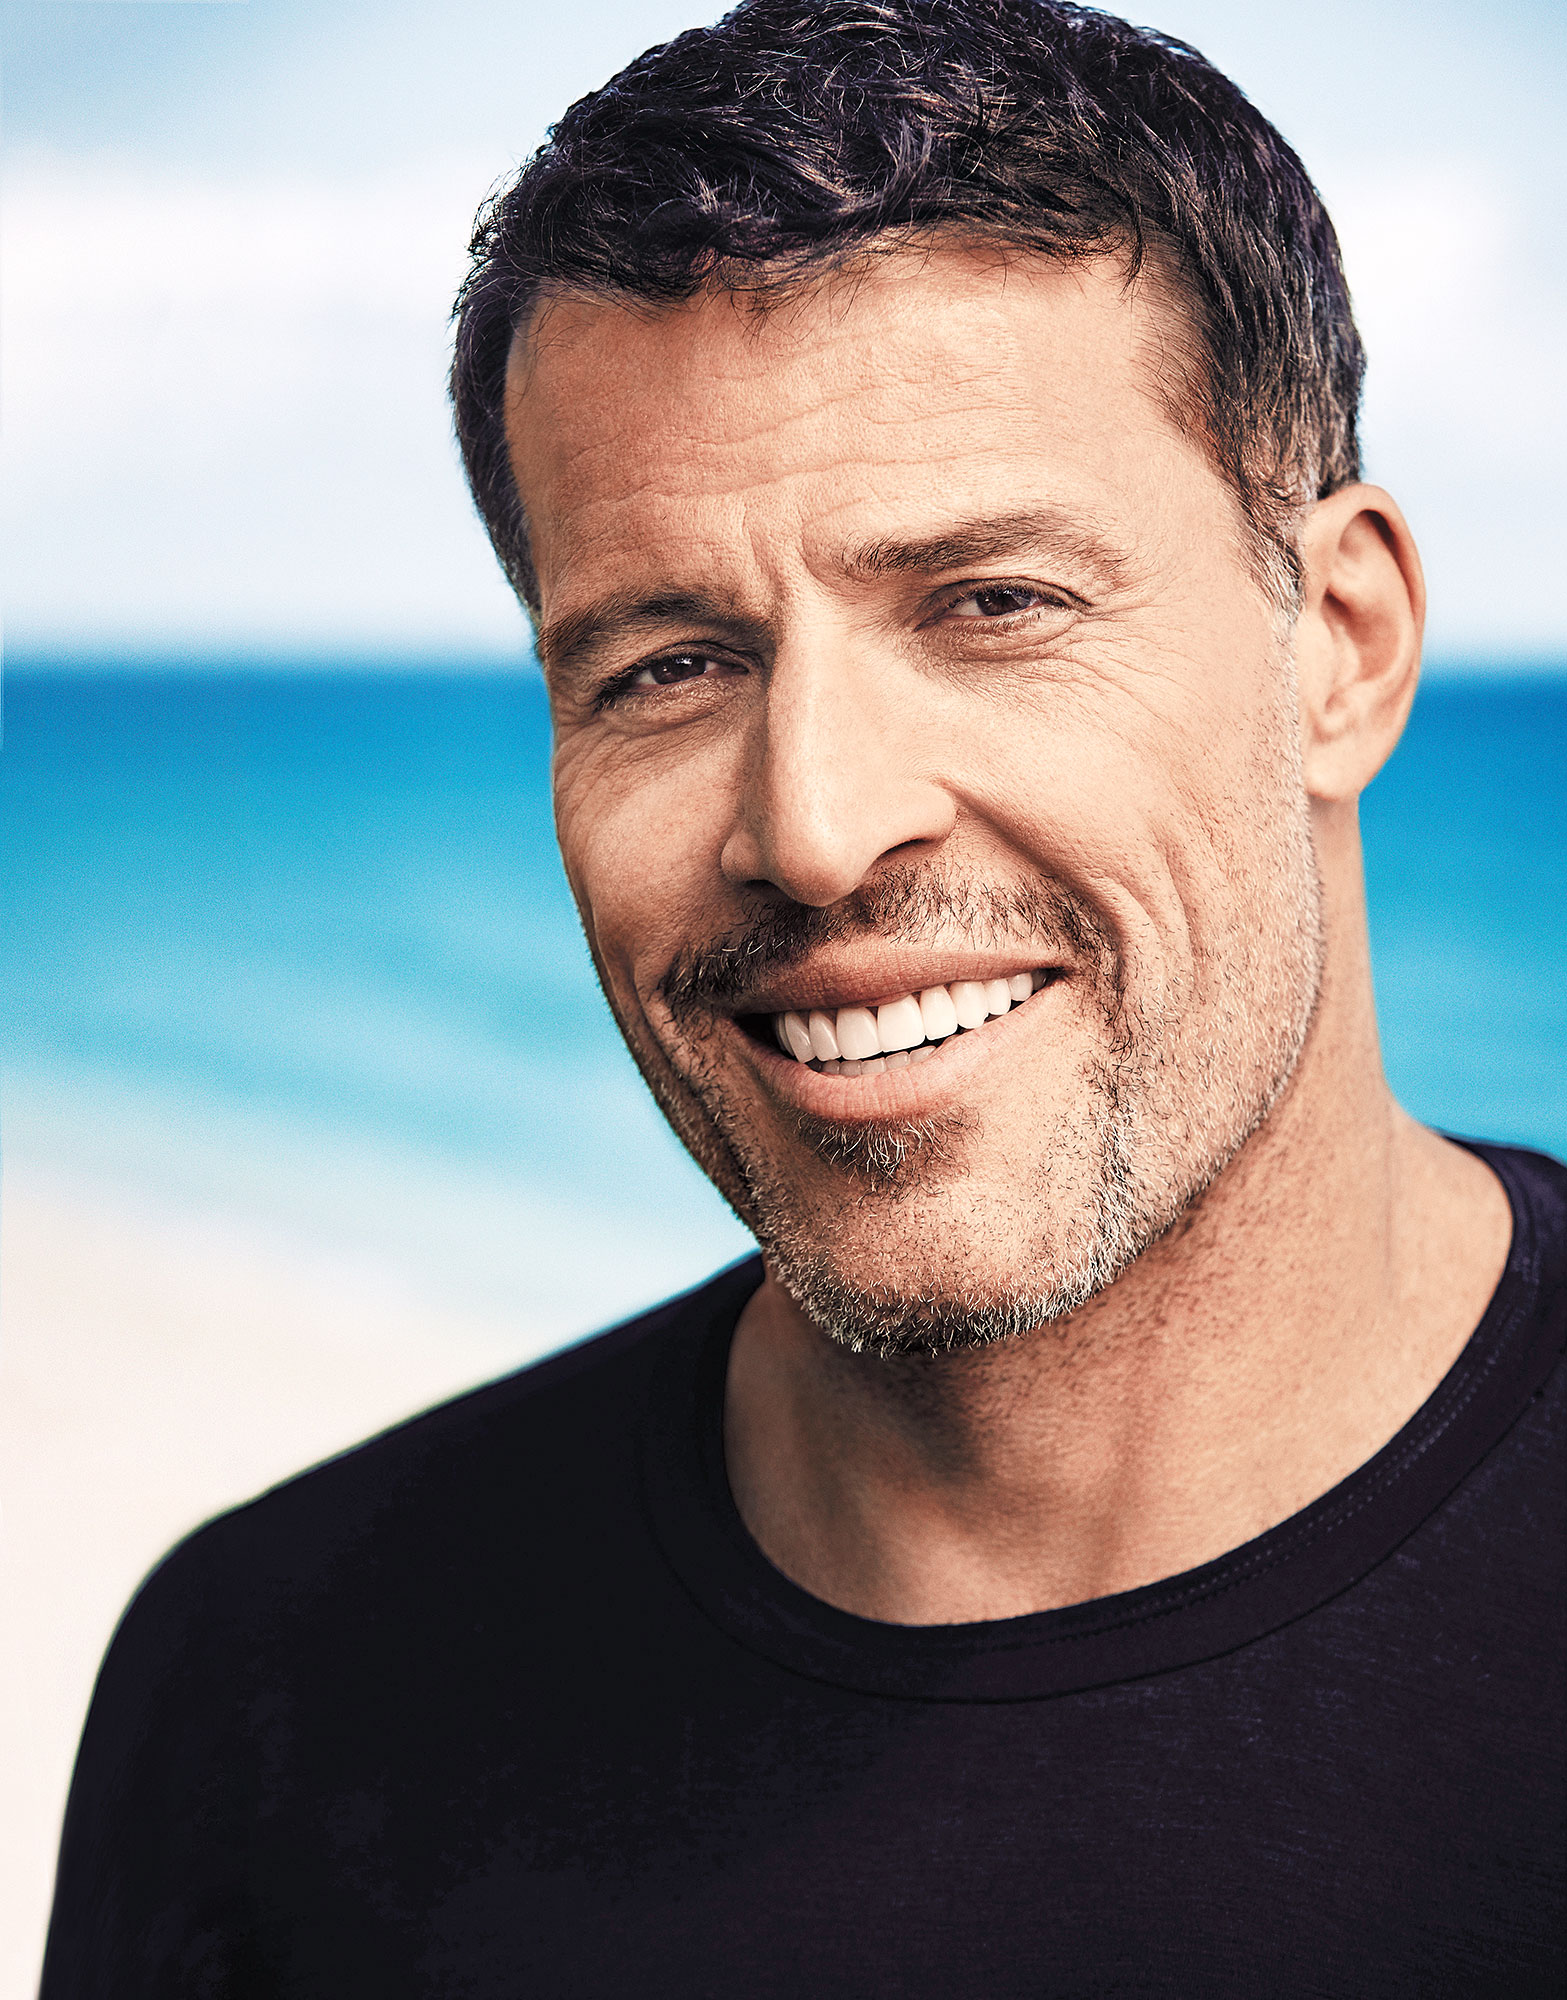 Tony Robbins: 25 Things You Don't Know About Me (My Grandfather Created the 'Yogi Bear' and 'Huckleberry Hound' Cartoons)